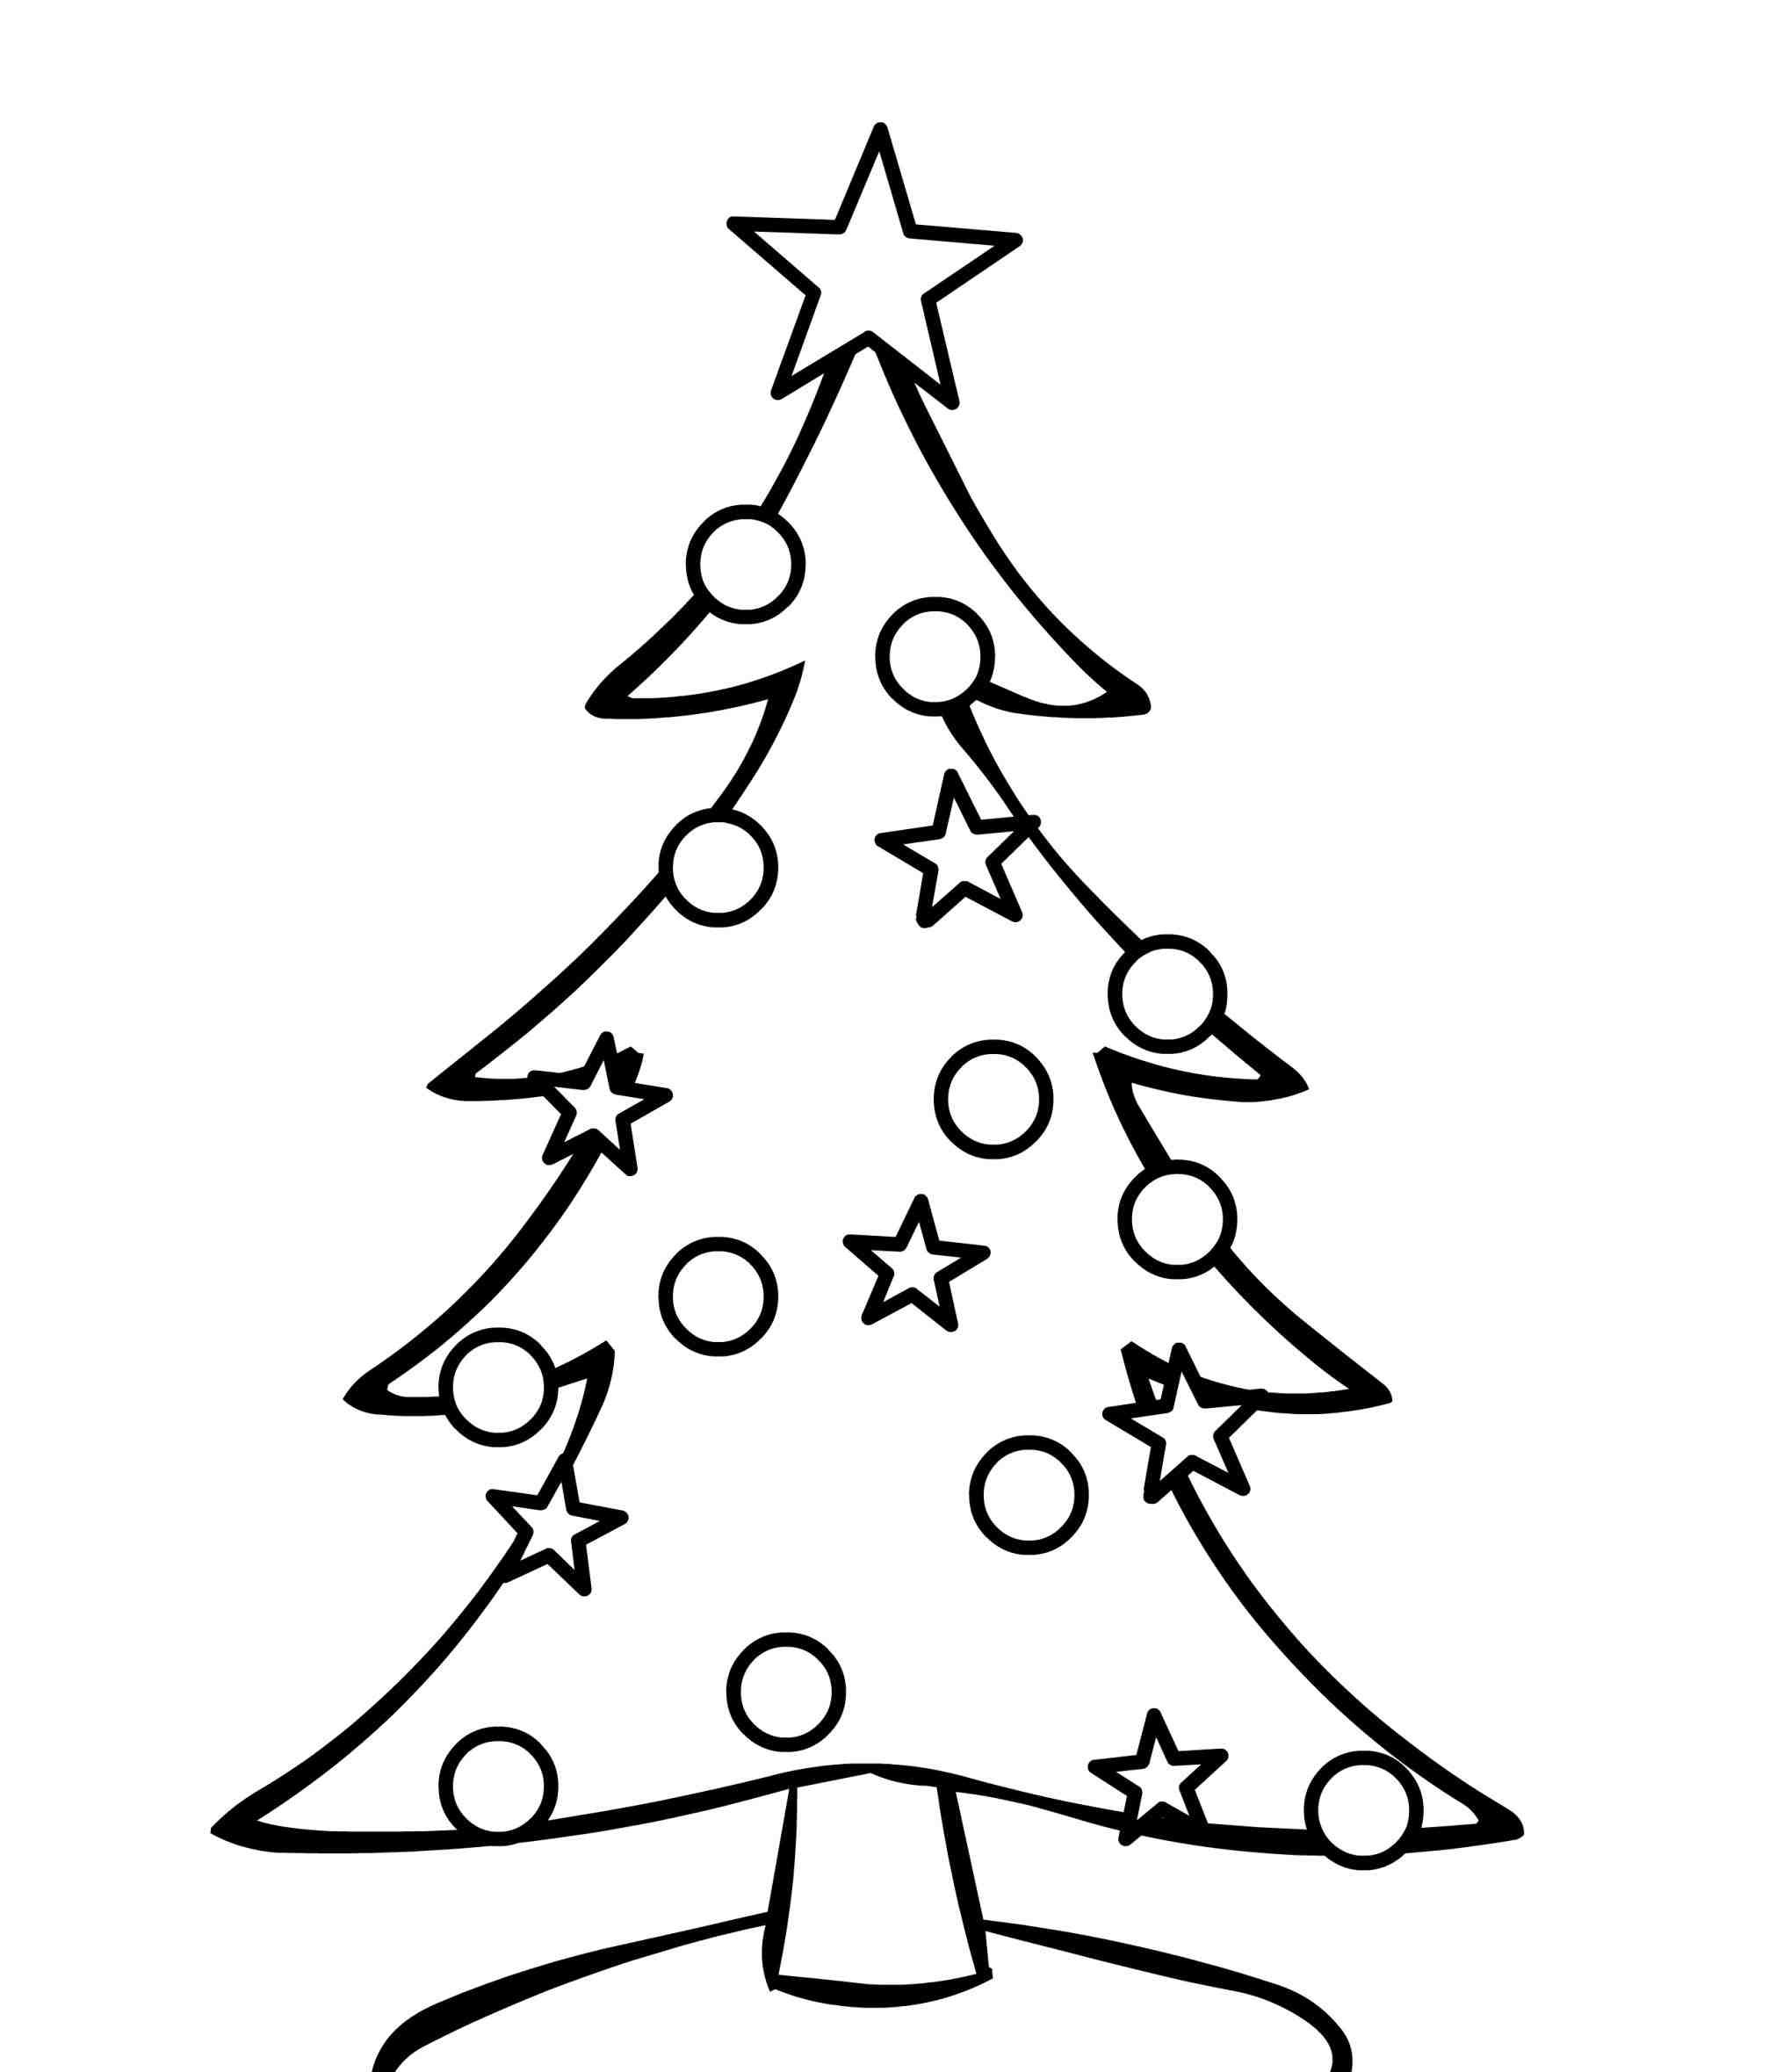 Drawing Christmas Tree Sketch.Tree Drawing Step By Step Free Download Best Tree Drawing